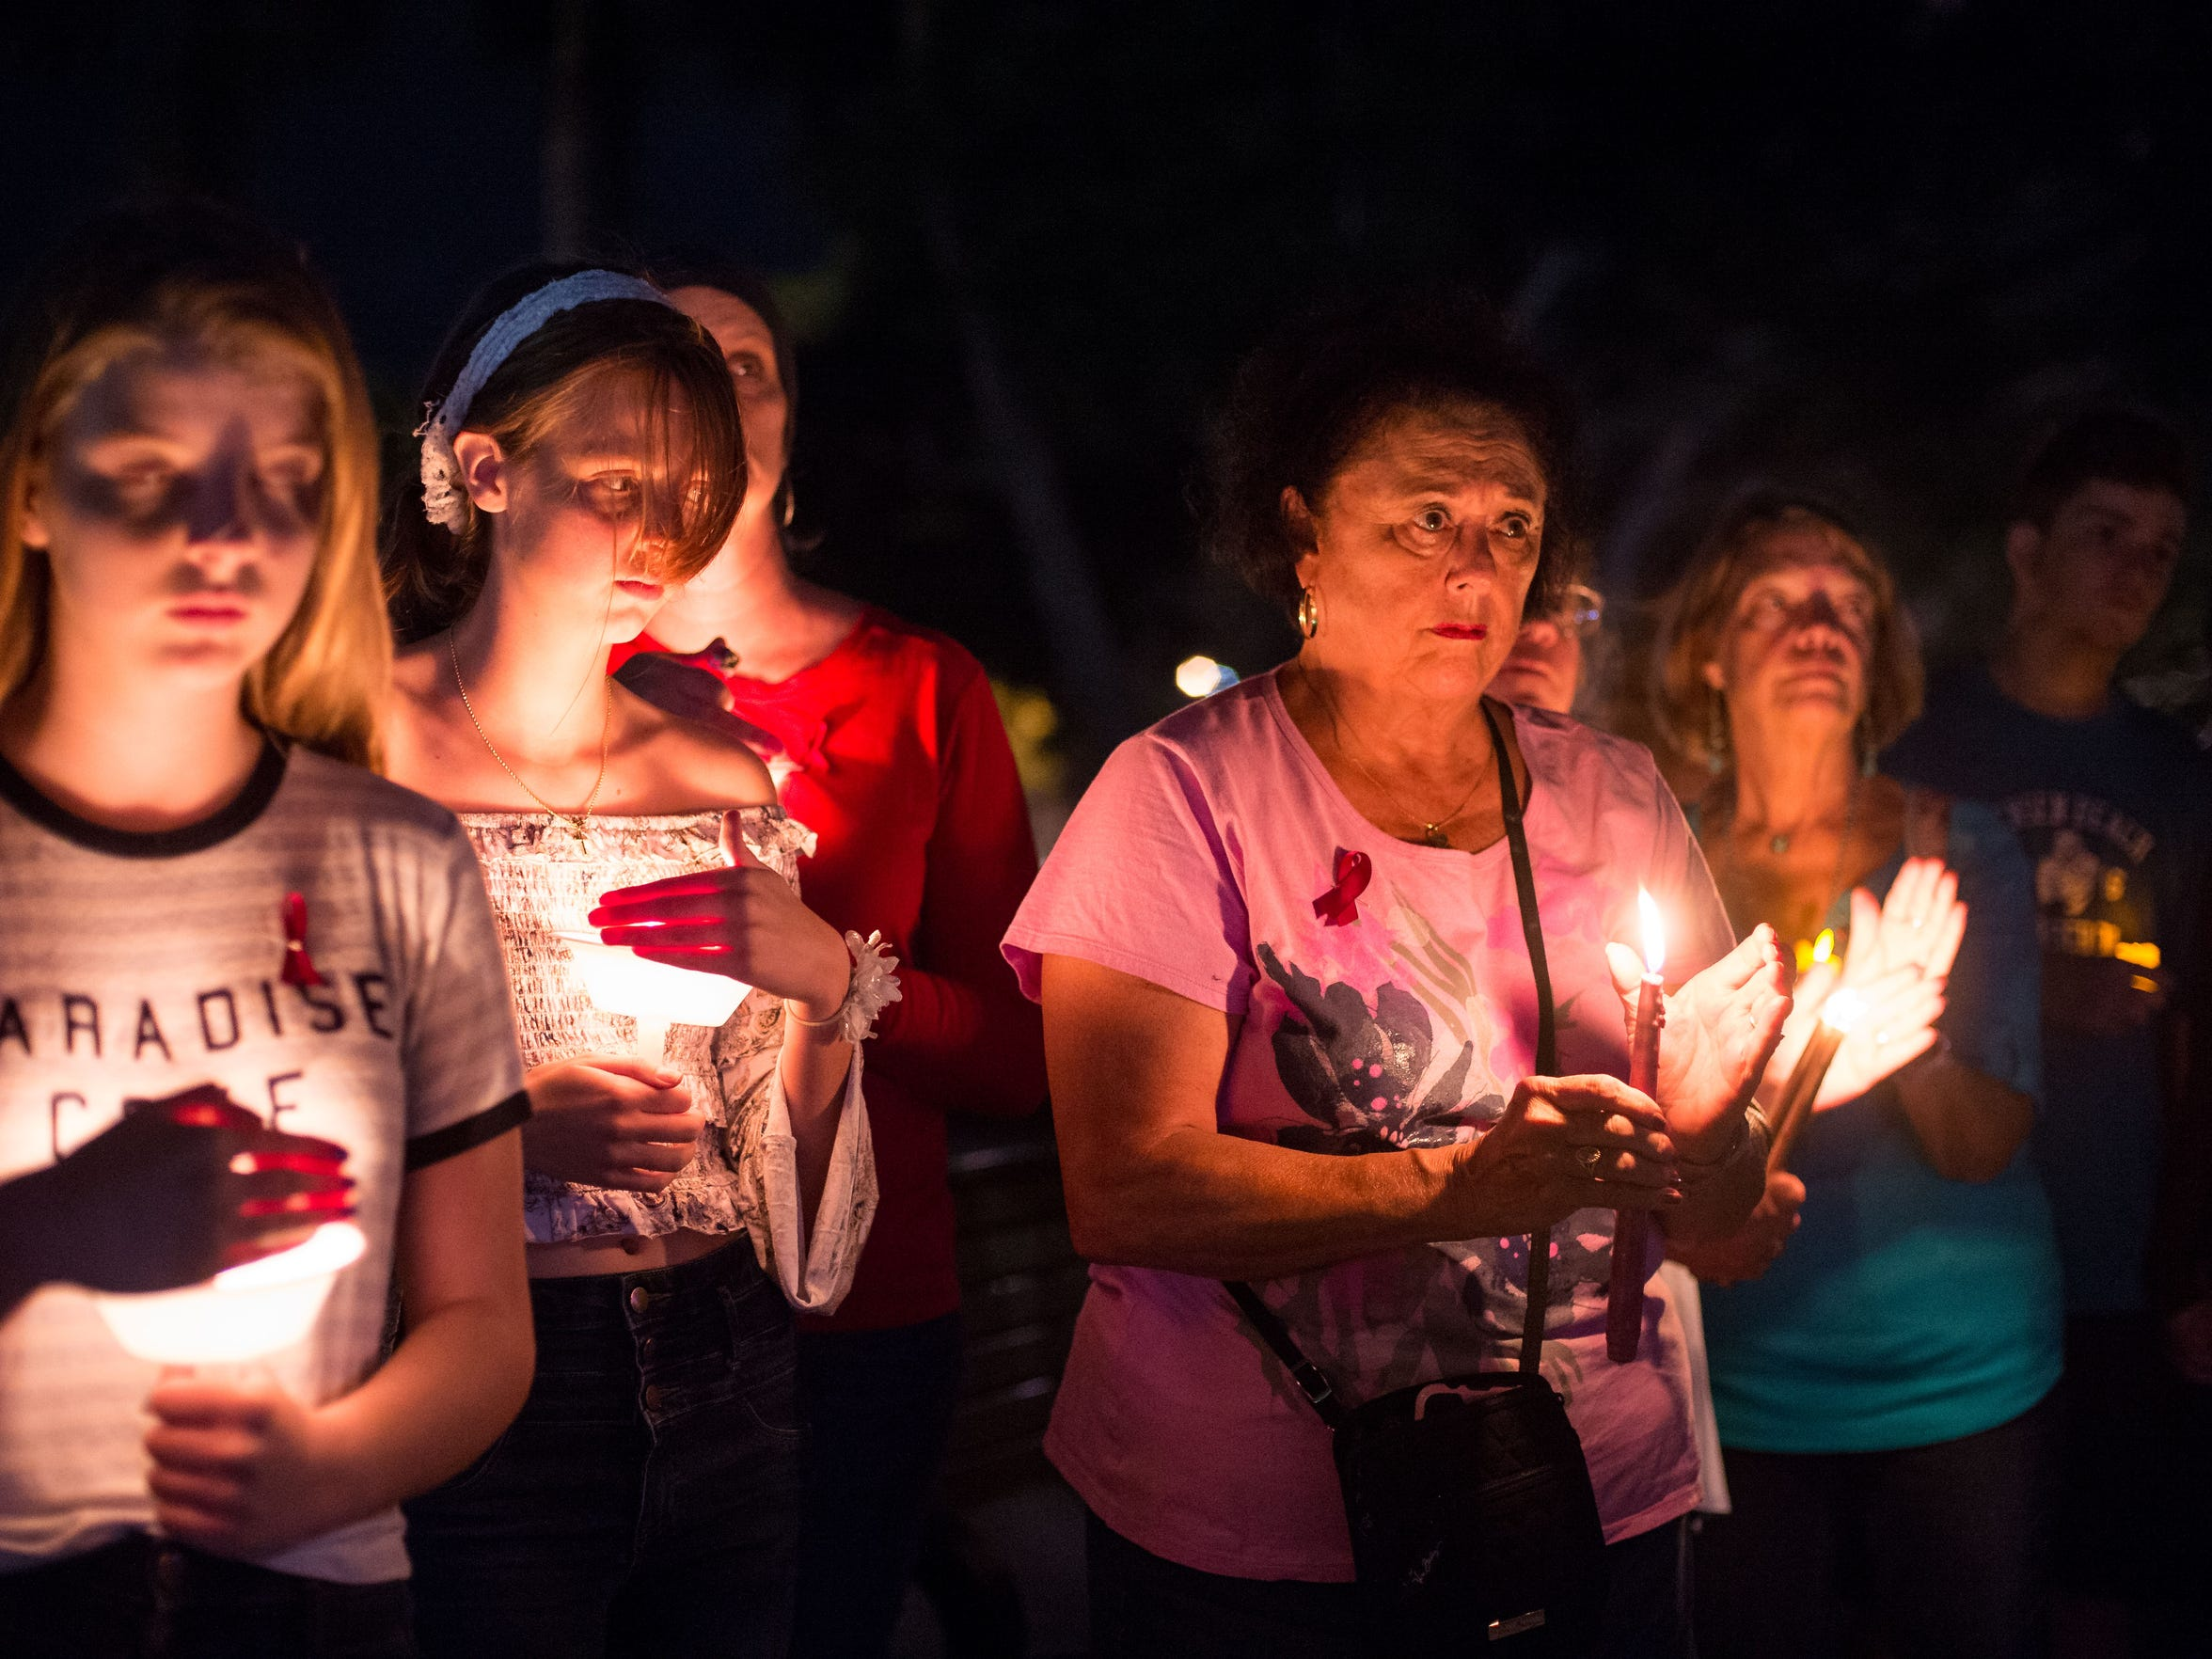 Nearly a hundred people attend a candlelight vigil at Memorial Park in downtown Stuart on Monday, Feb. 19, 2018, to honor the victims of last week's mass shooting at Marjorie Stoneman Douglas High School in Parkland. The vigil, which was organized by Florida PTA, was one of several held simultaneously across the state.